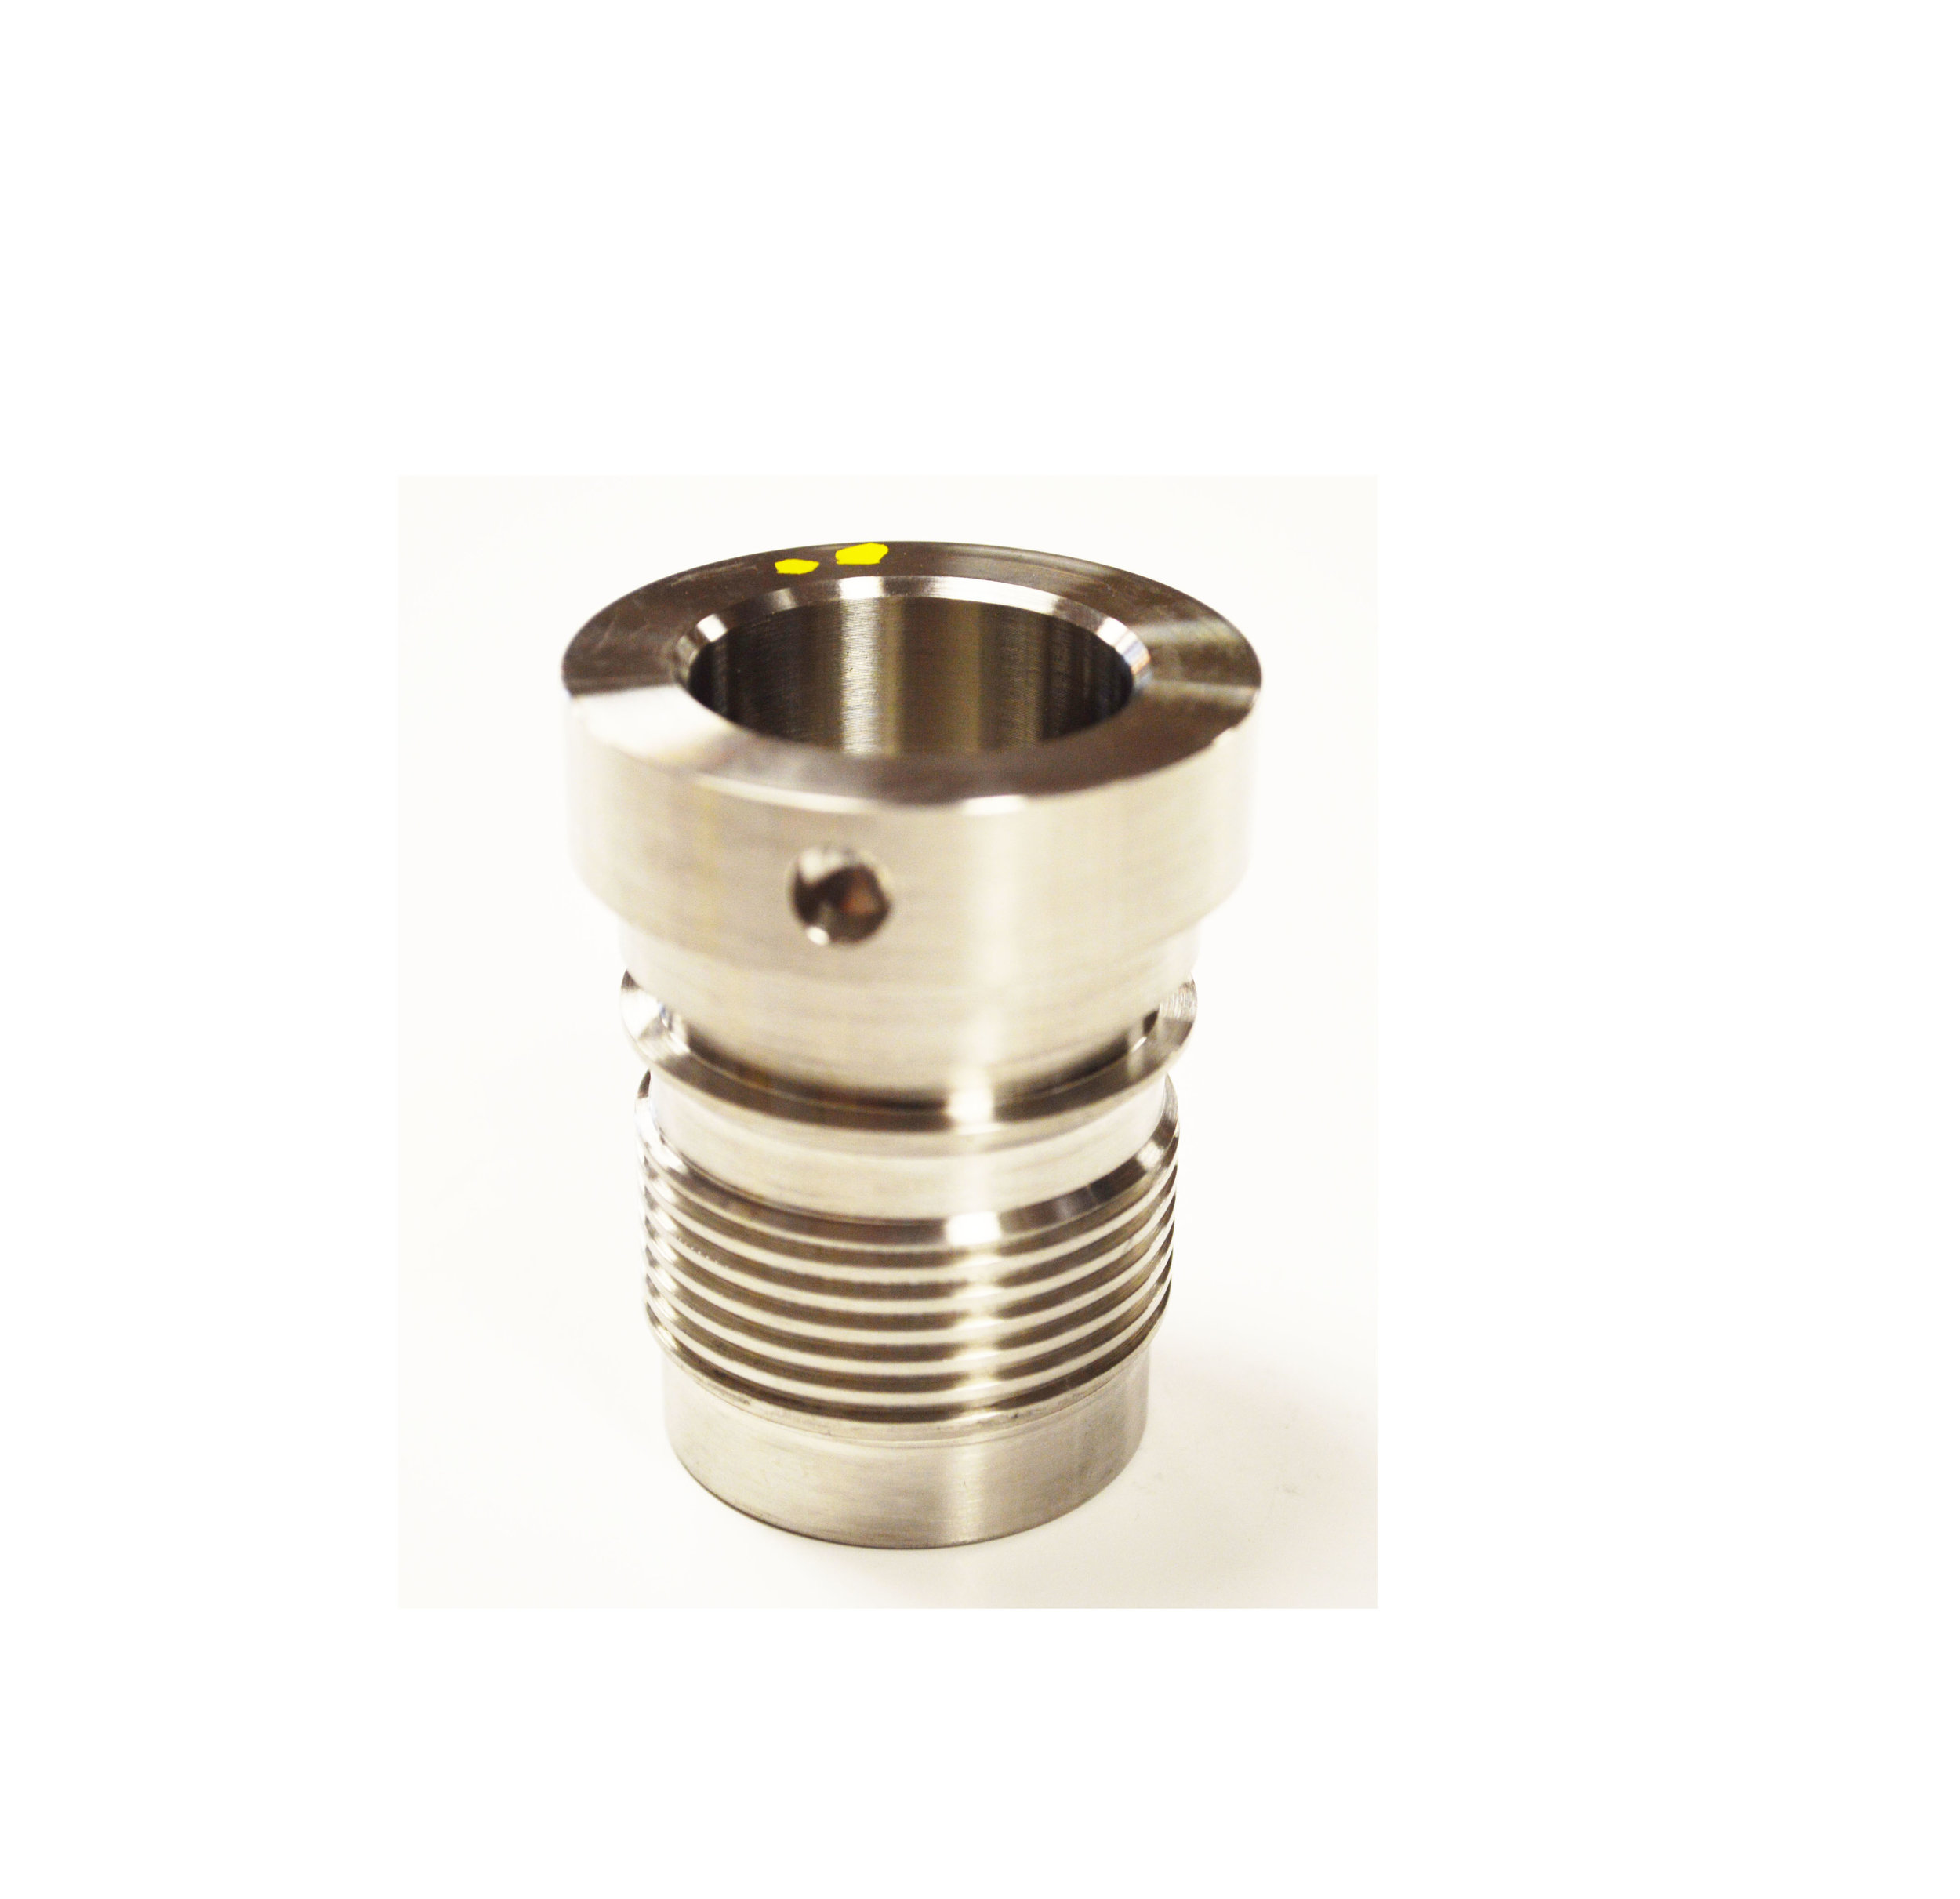 Threaded Ring              BeCu             SMS-3900            Nitronic 50           SMS-3901